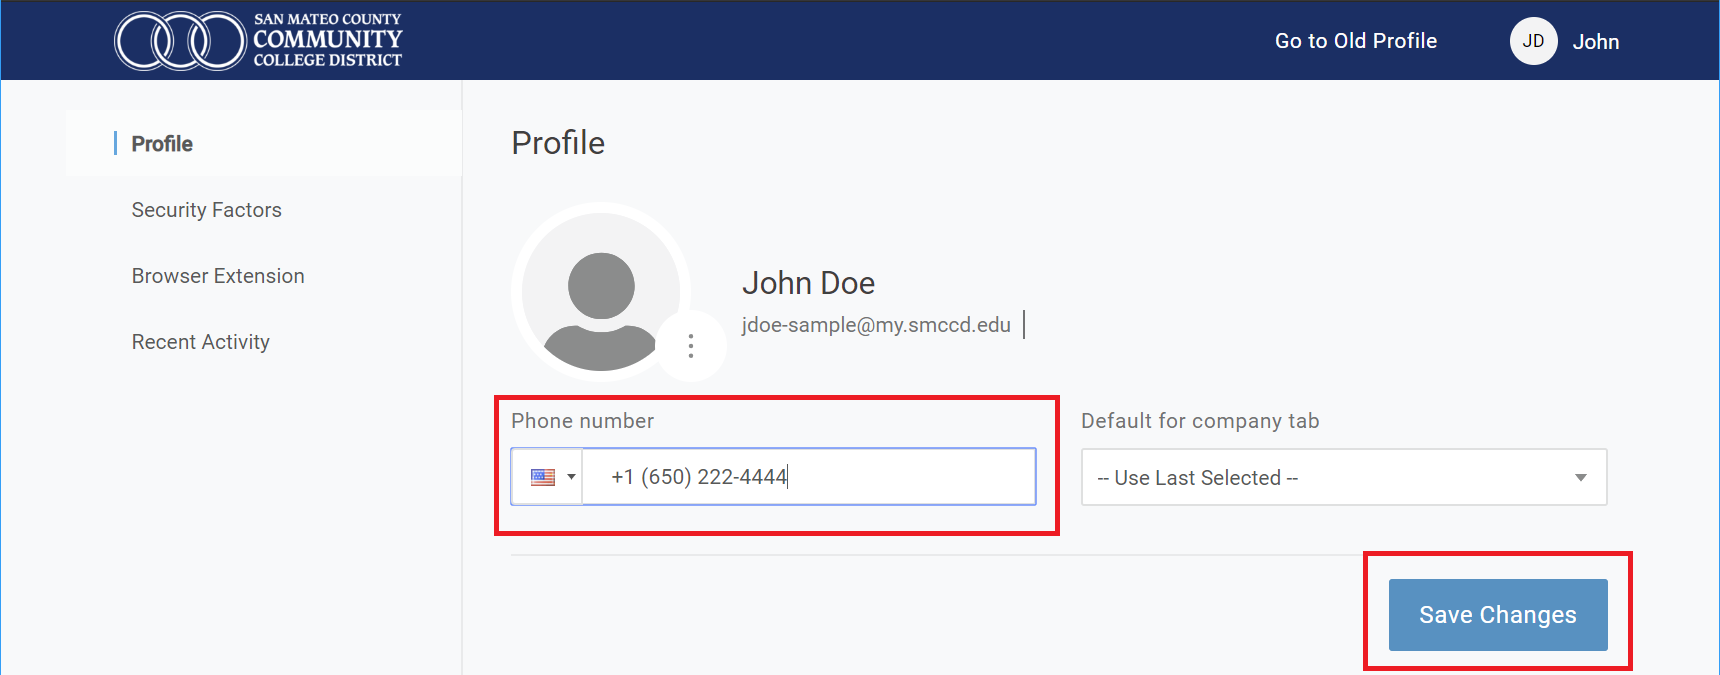 Update mobile number field and Save Changes button highlighted on user profile page